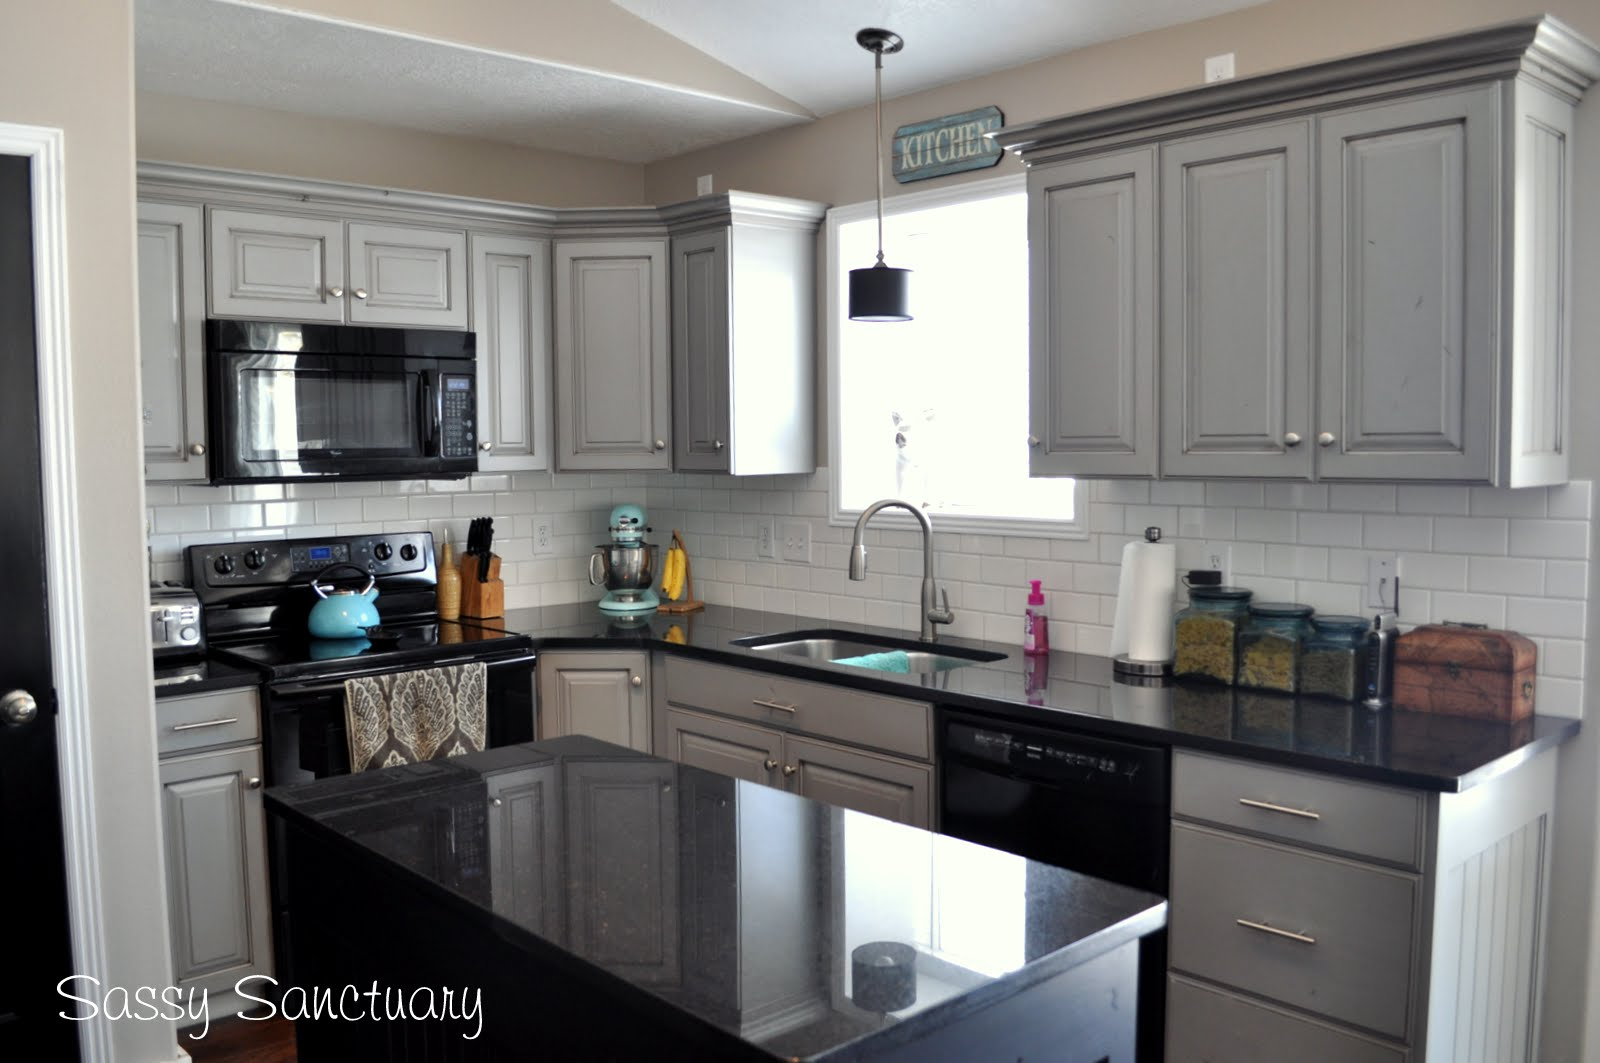 Sassy Sanctuary Kitchen Reveal - Black granite countertops with grey cabinets